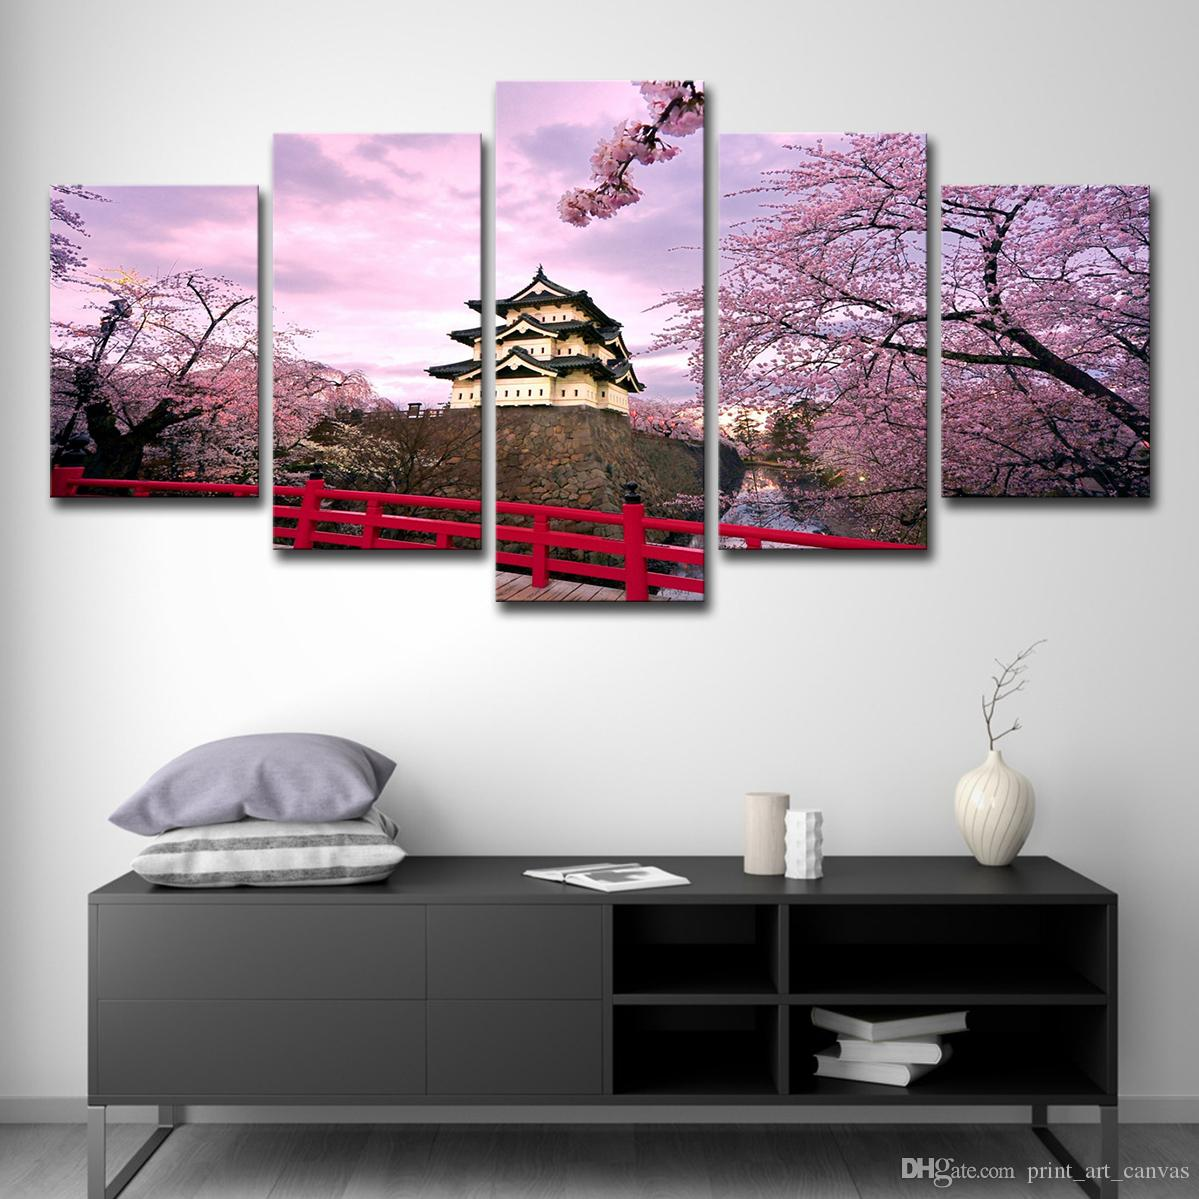 Canvas Wall Art Modular Pictures HD Printed Poster 5 Pieces Home Decor Cherry Blossoms Castle And House Paintings